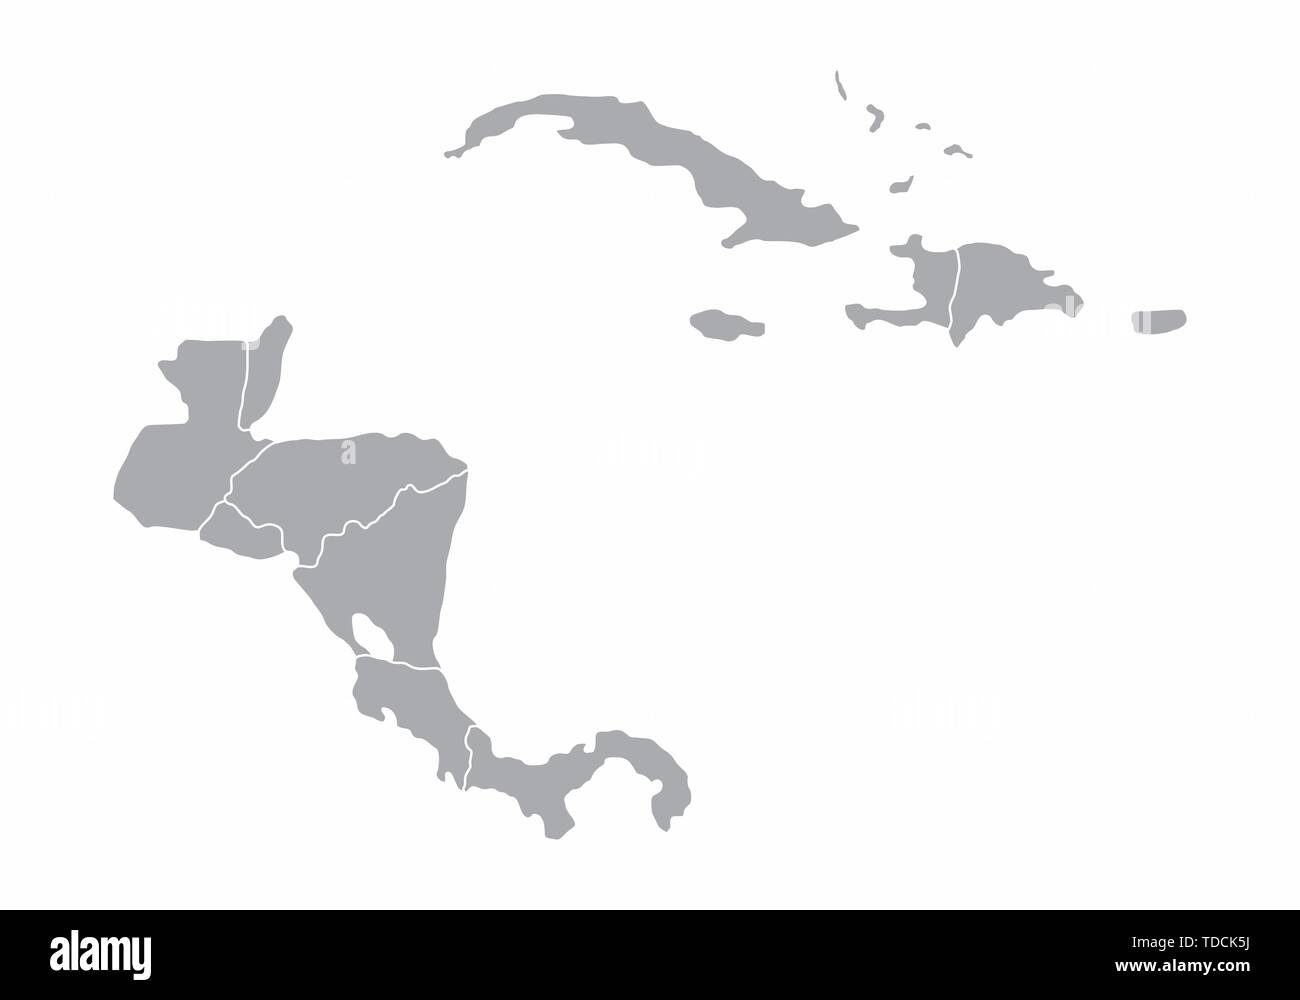 Central America gray map isolated on white background Stock ...